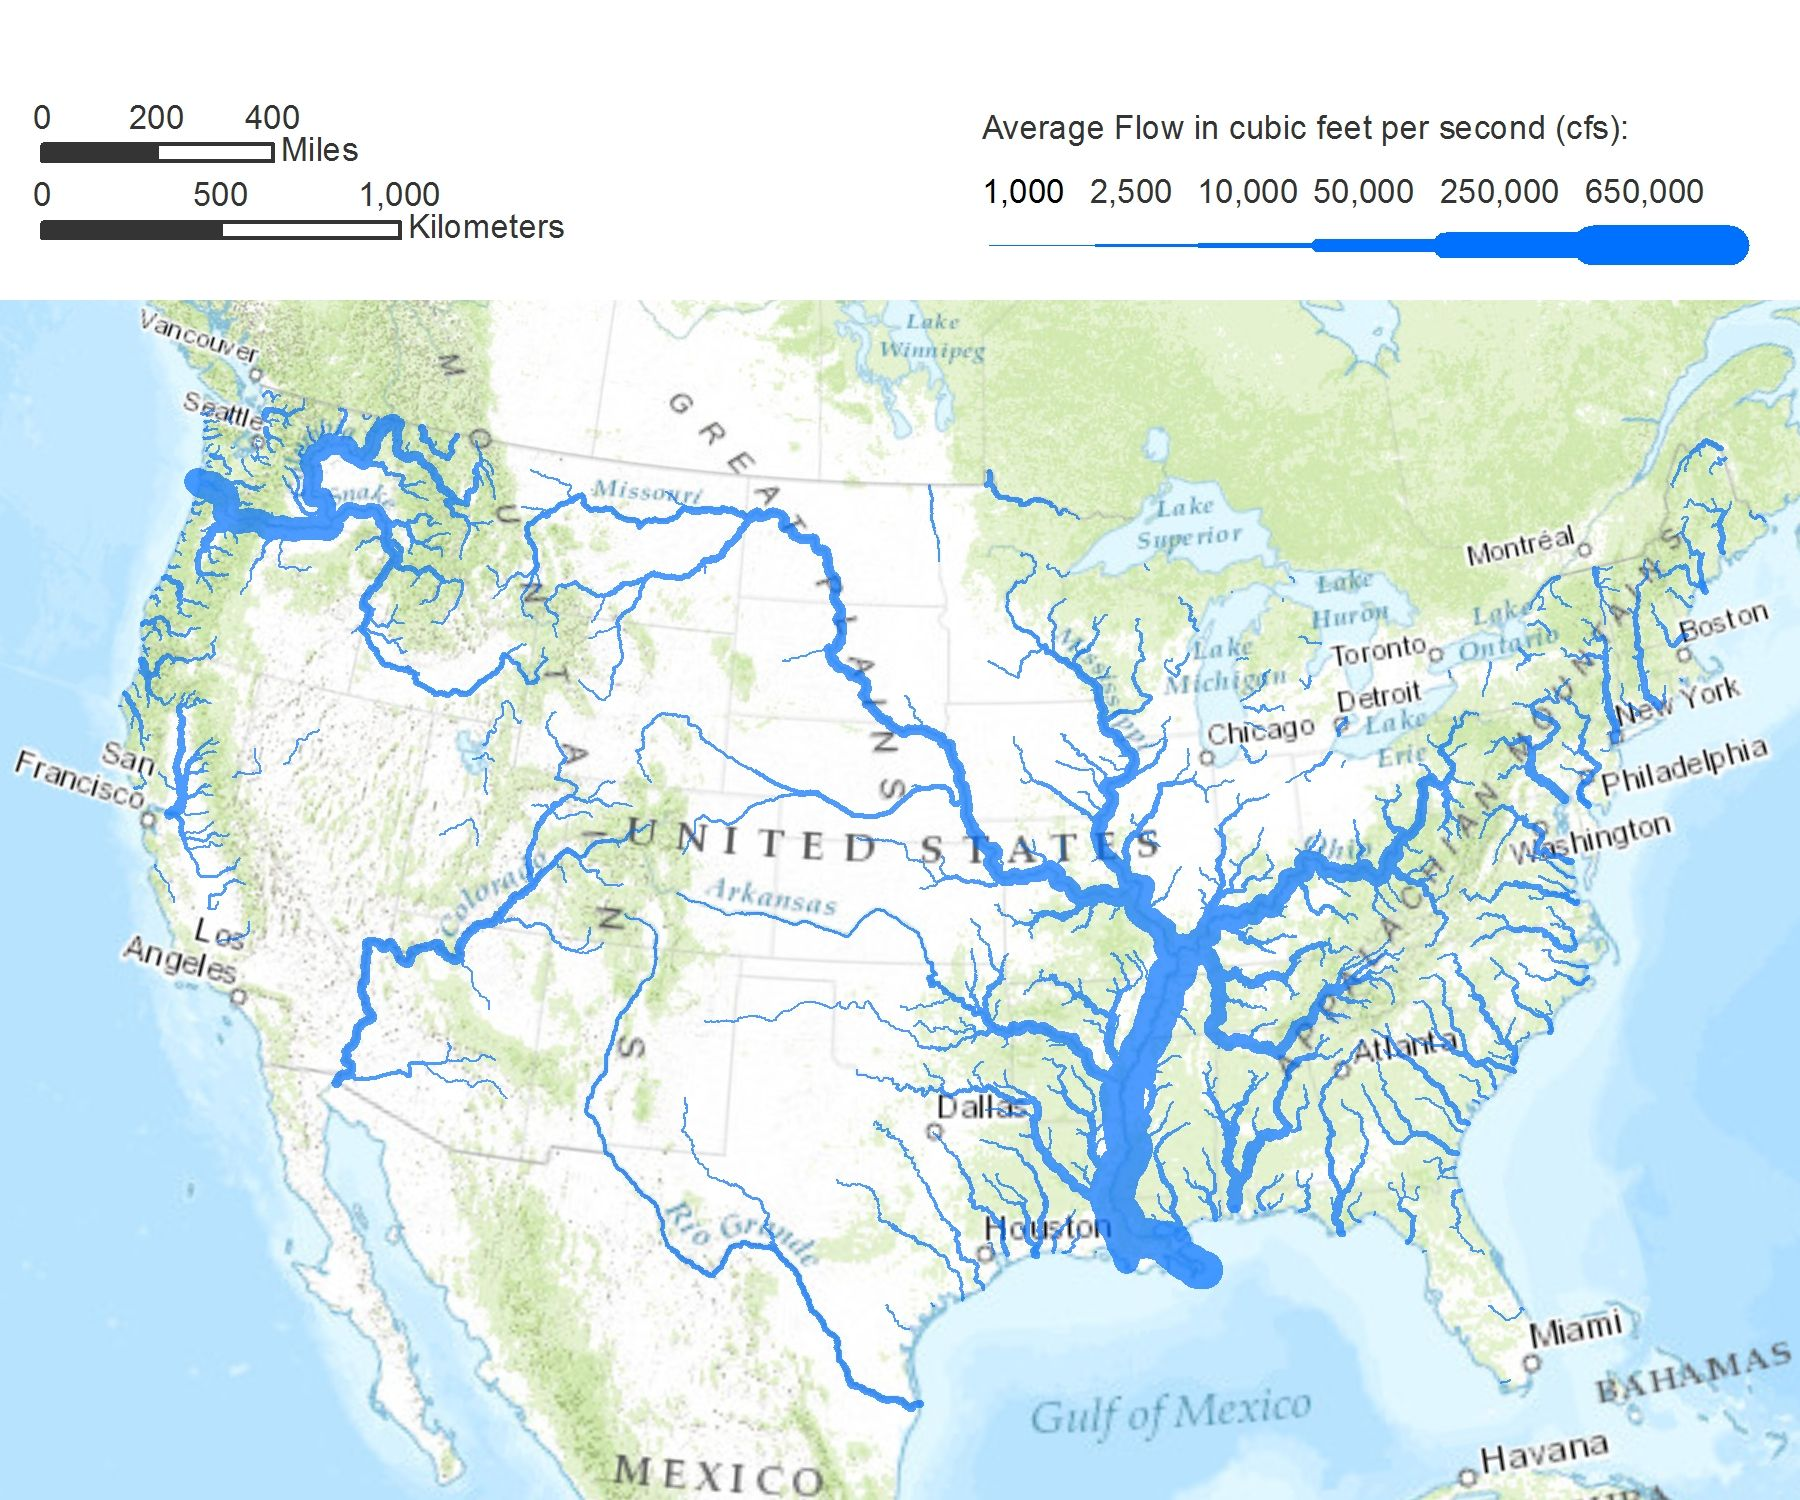 United States Rivers Map Where In The World Pinterest Rivers - United states rivers map